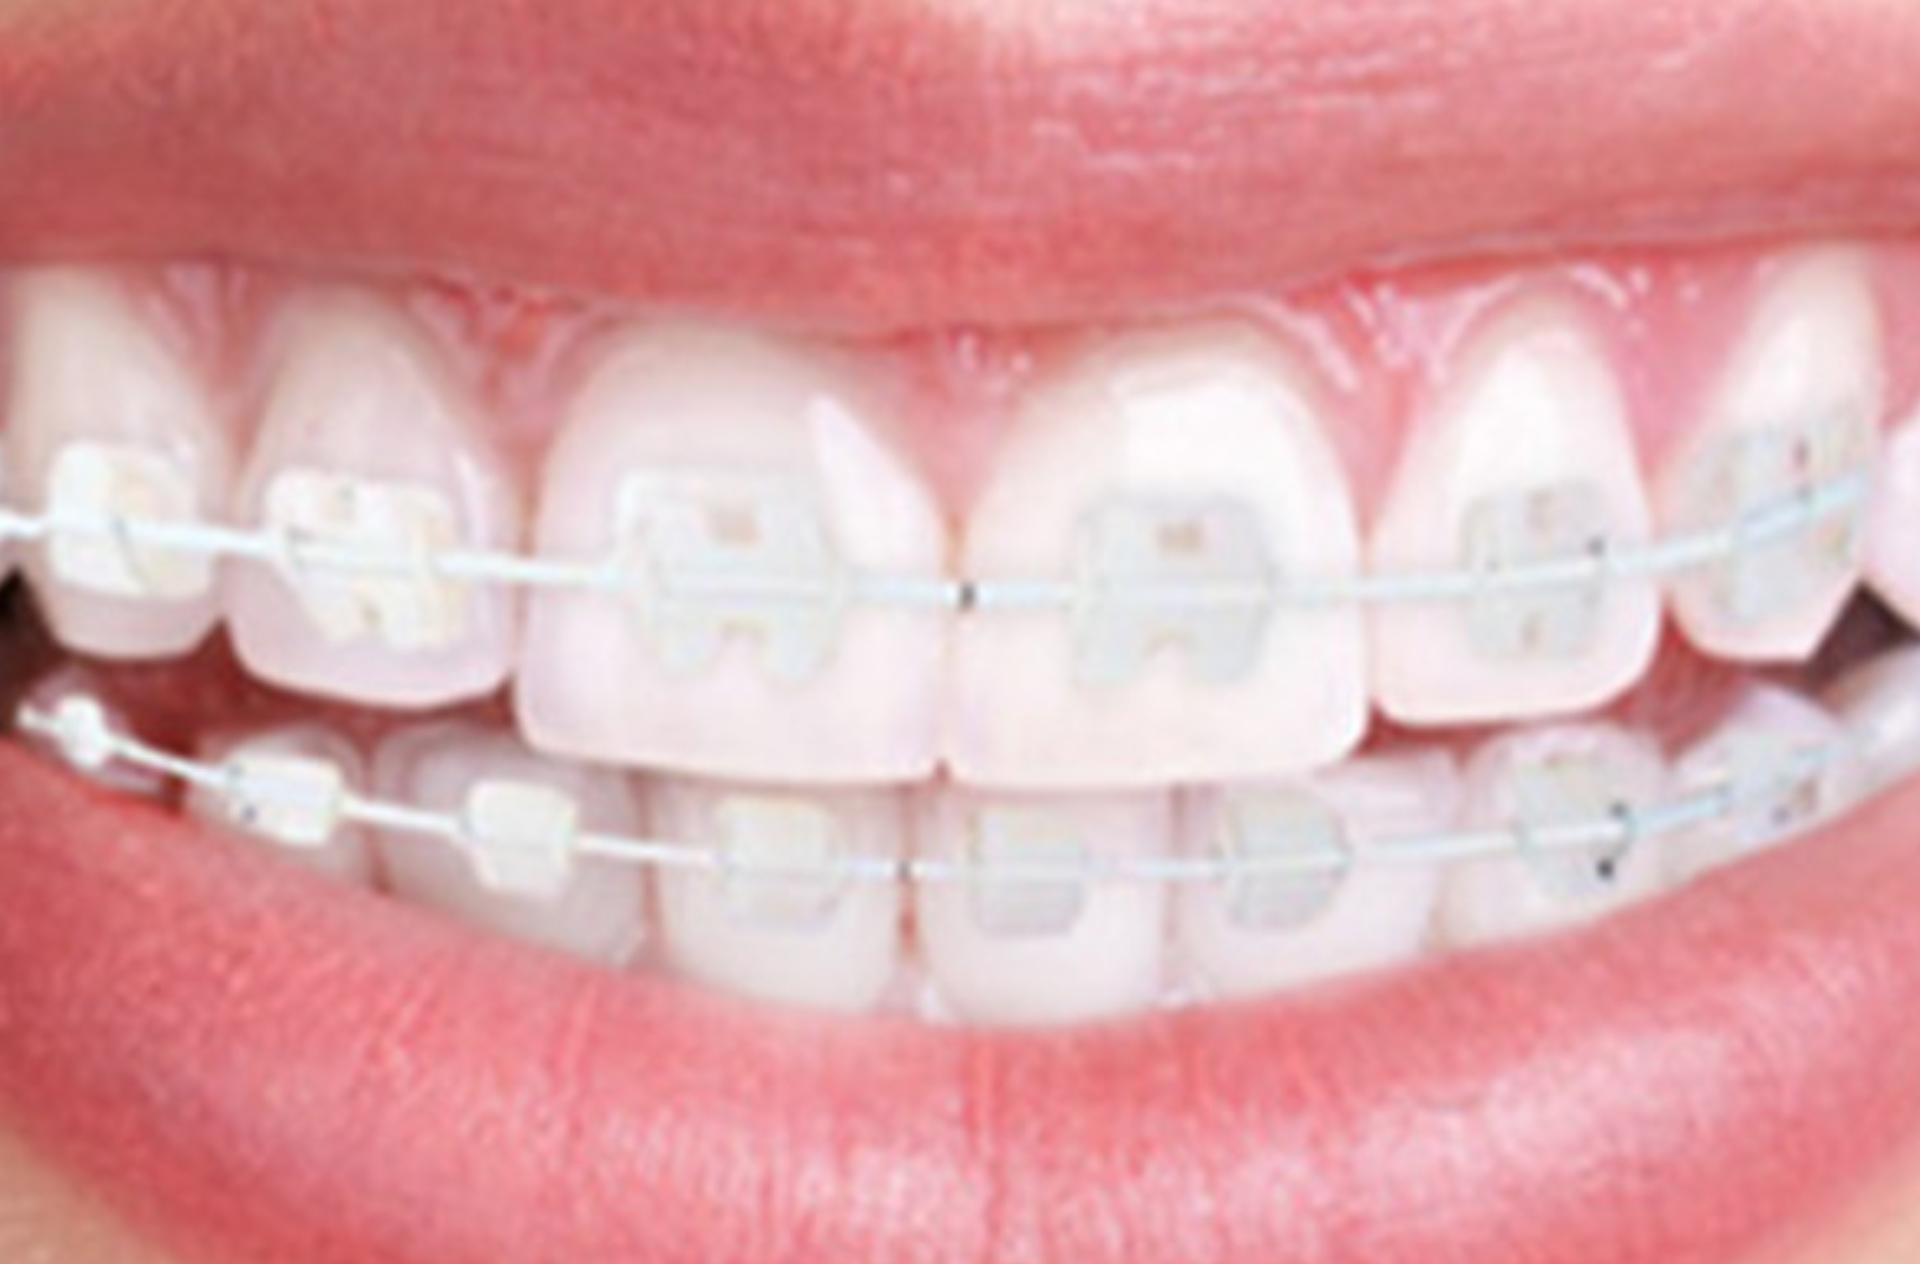 Fixed orthodontic appliance therapy (ceramic brackets)